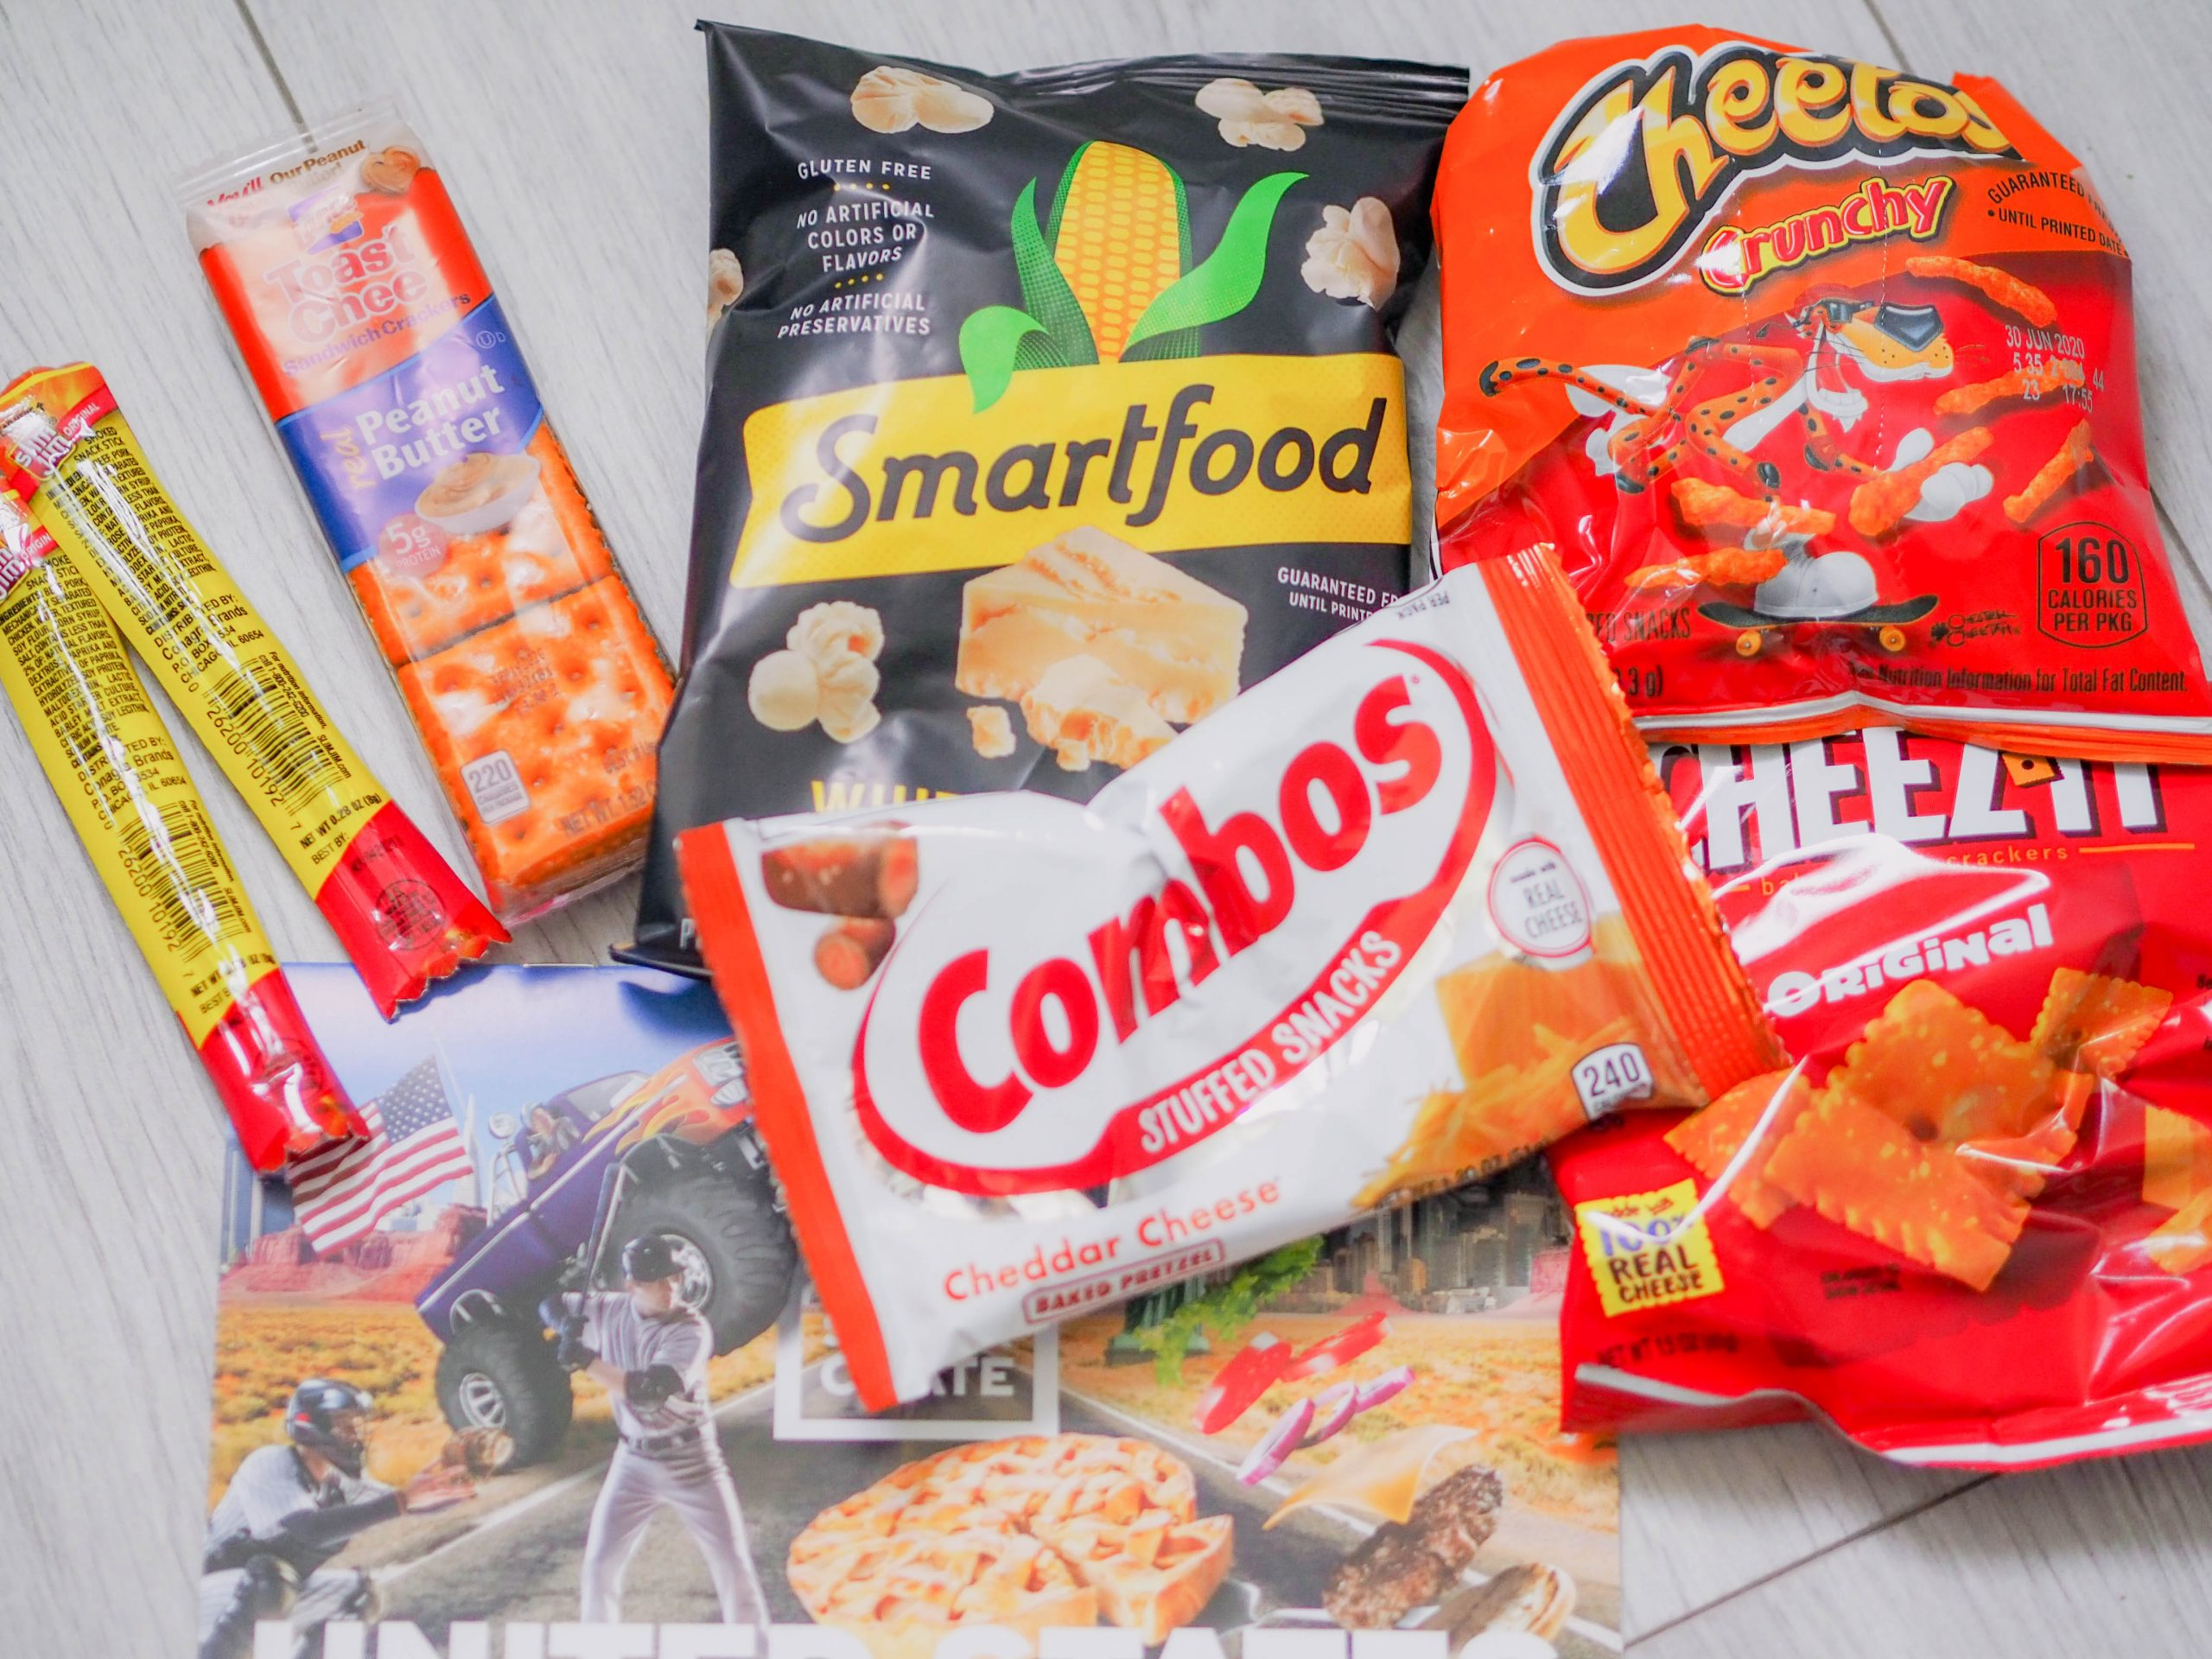 Facebook Made Me Do It: Snackcrate